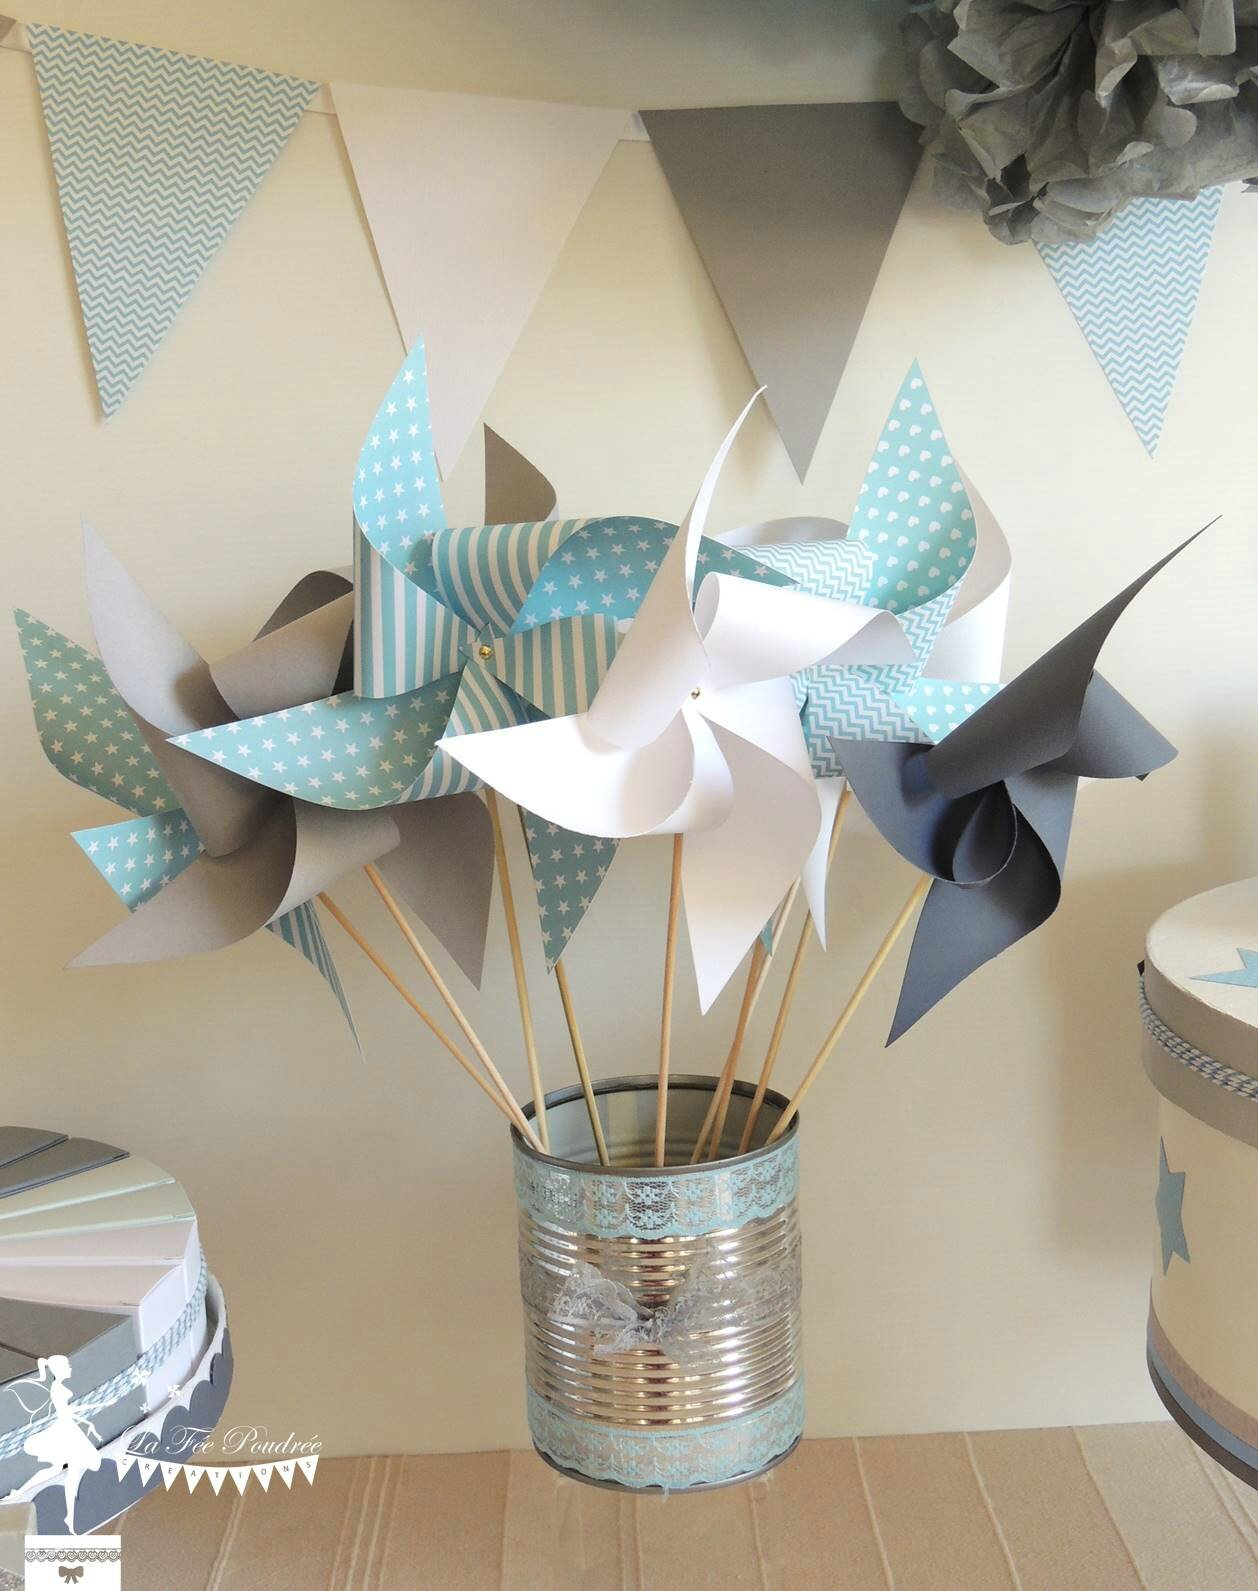 decoration mariage bapteme baby shower moulin a vent bleu gris blanc